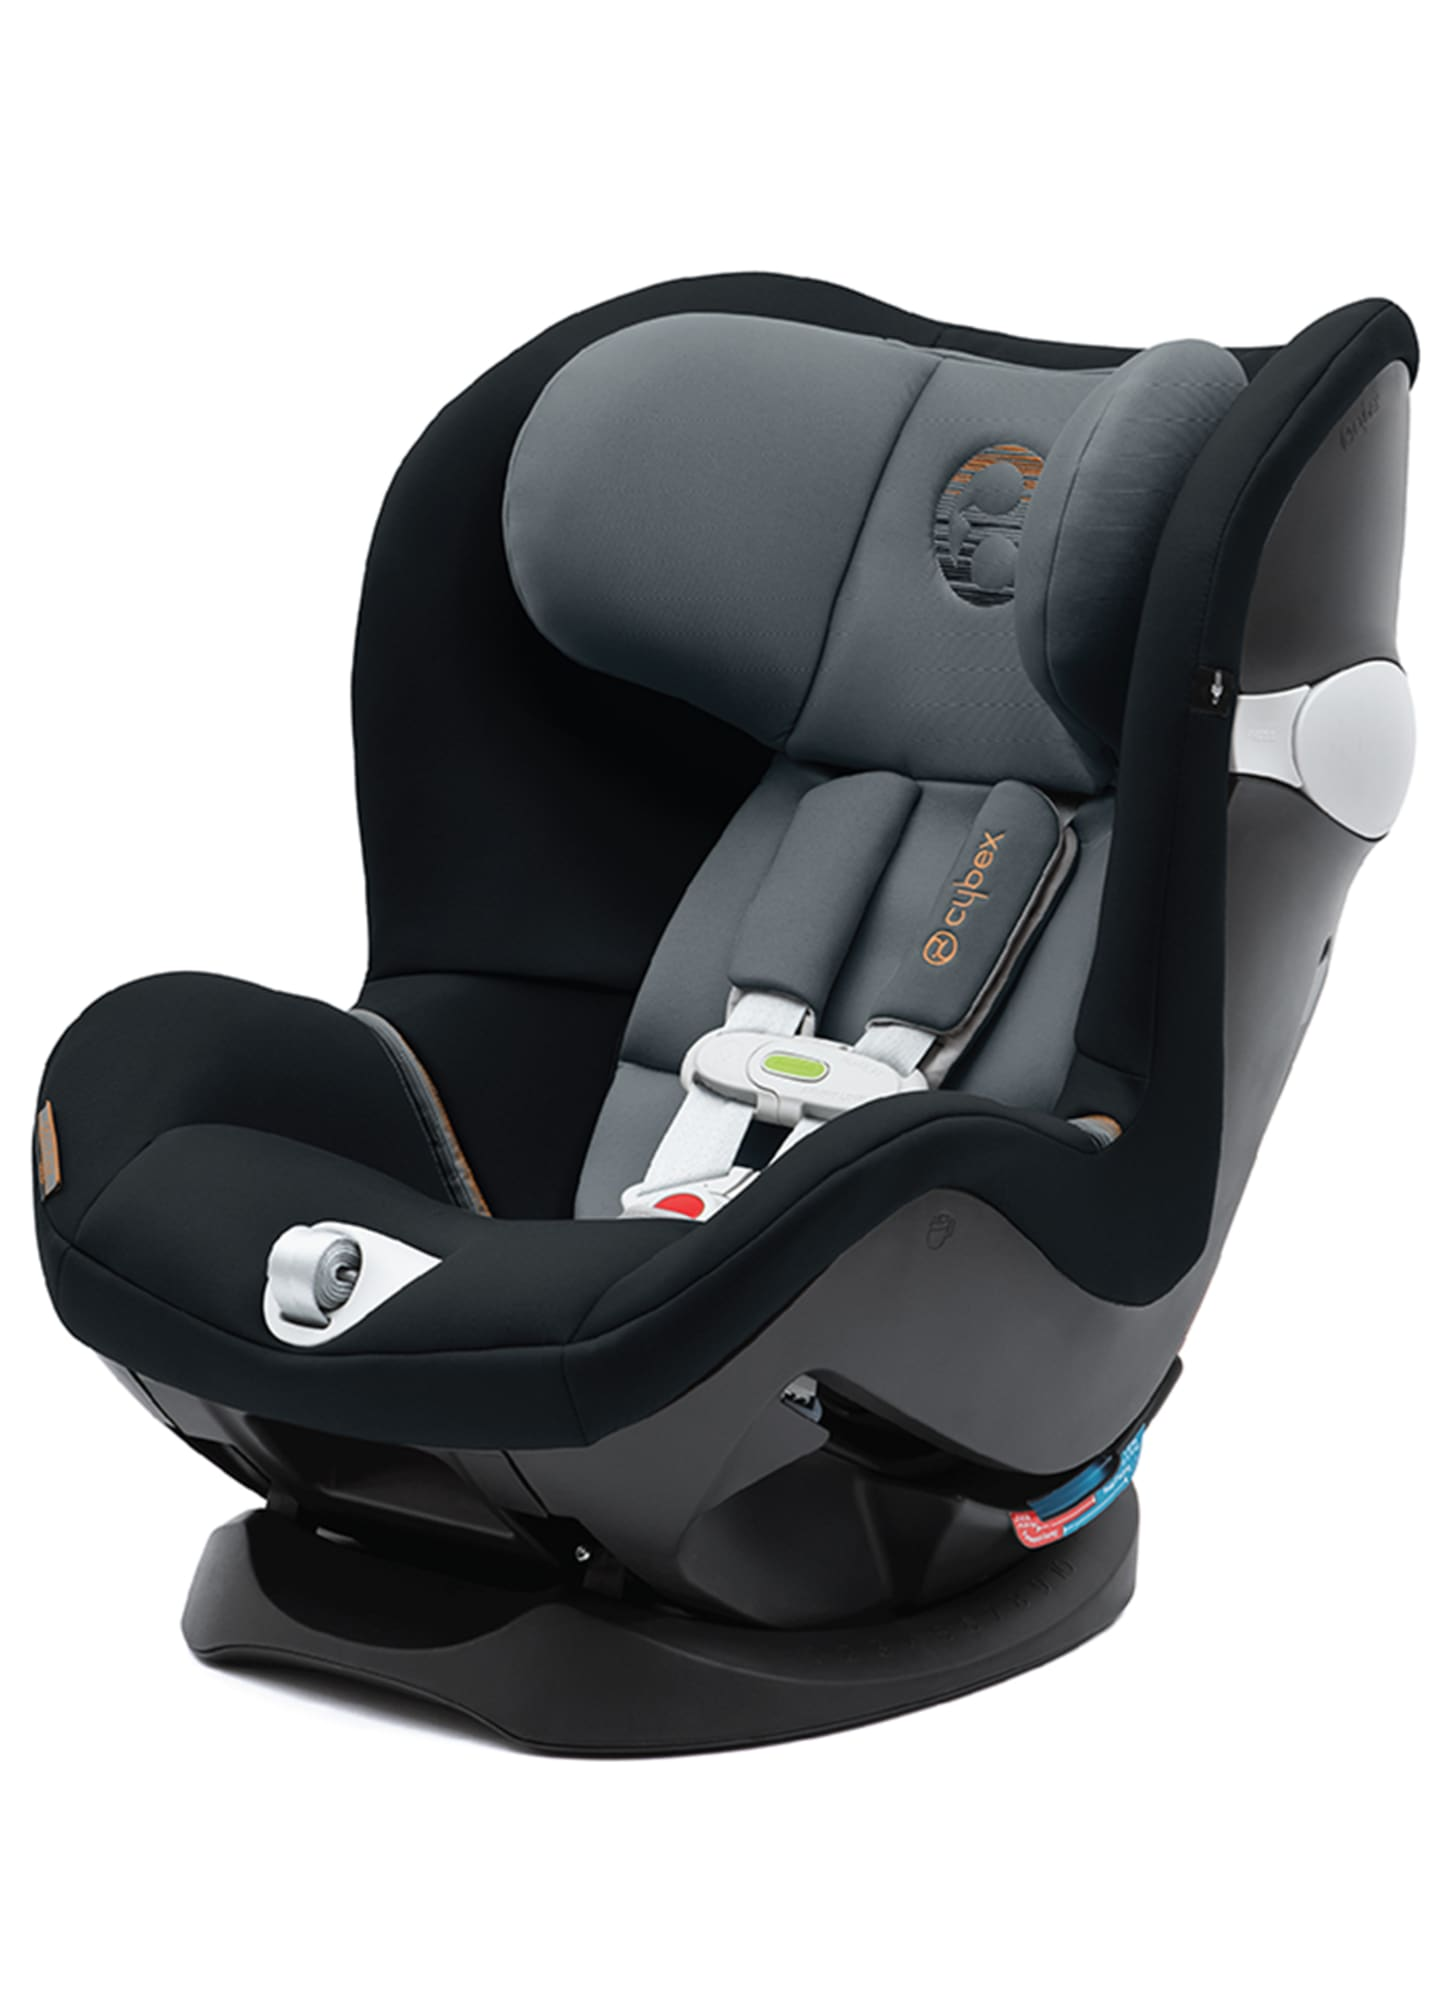 Cybex Sirona M SensorSafe Car Seat with Driver